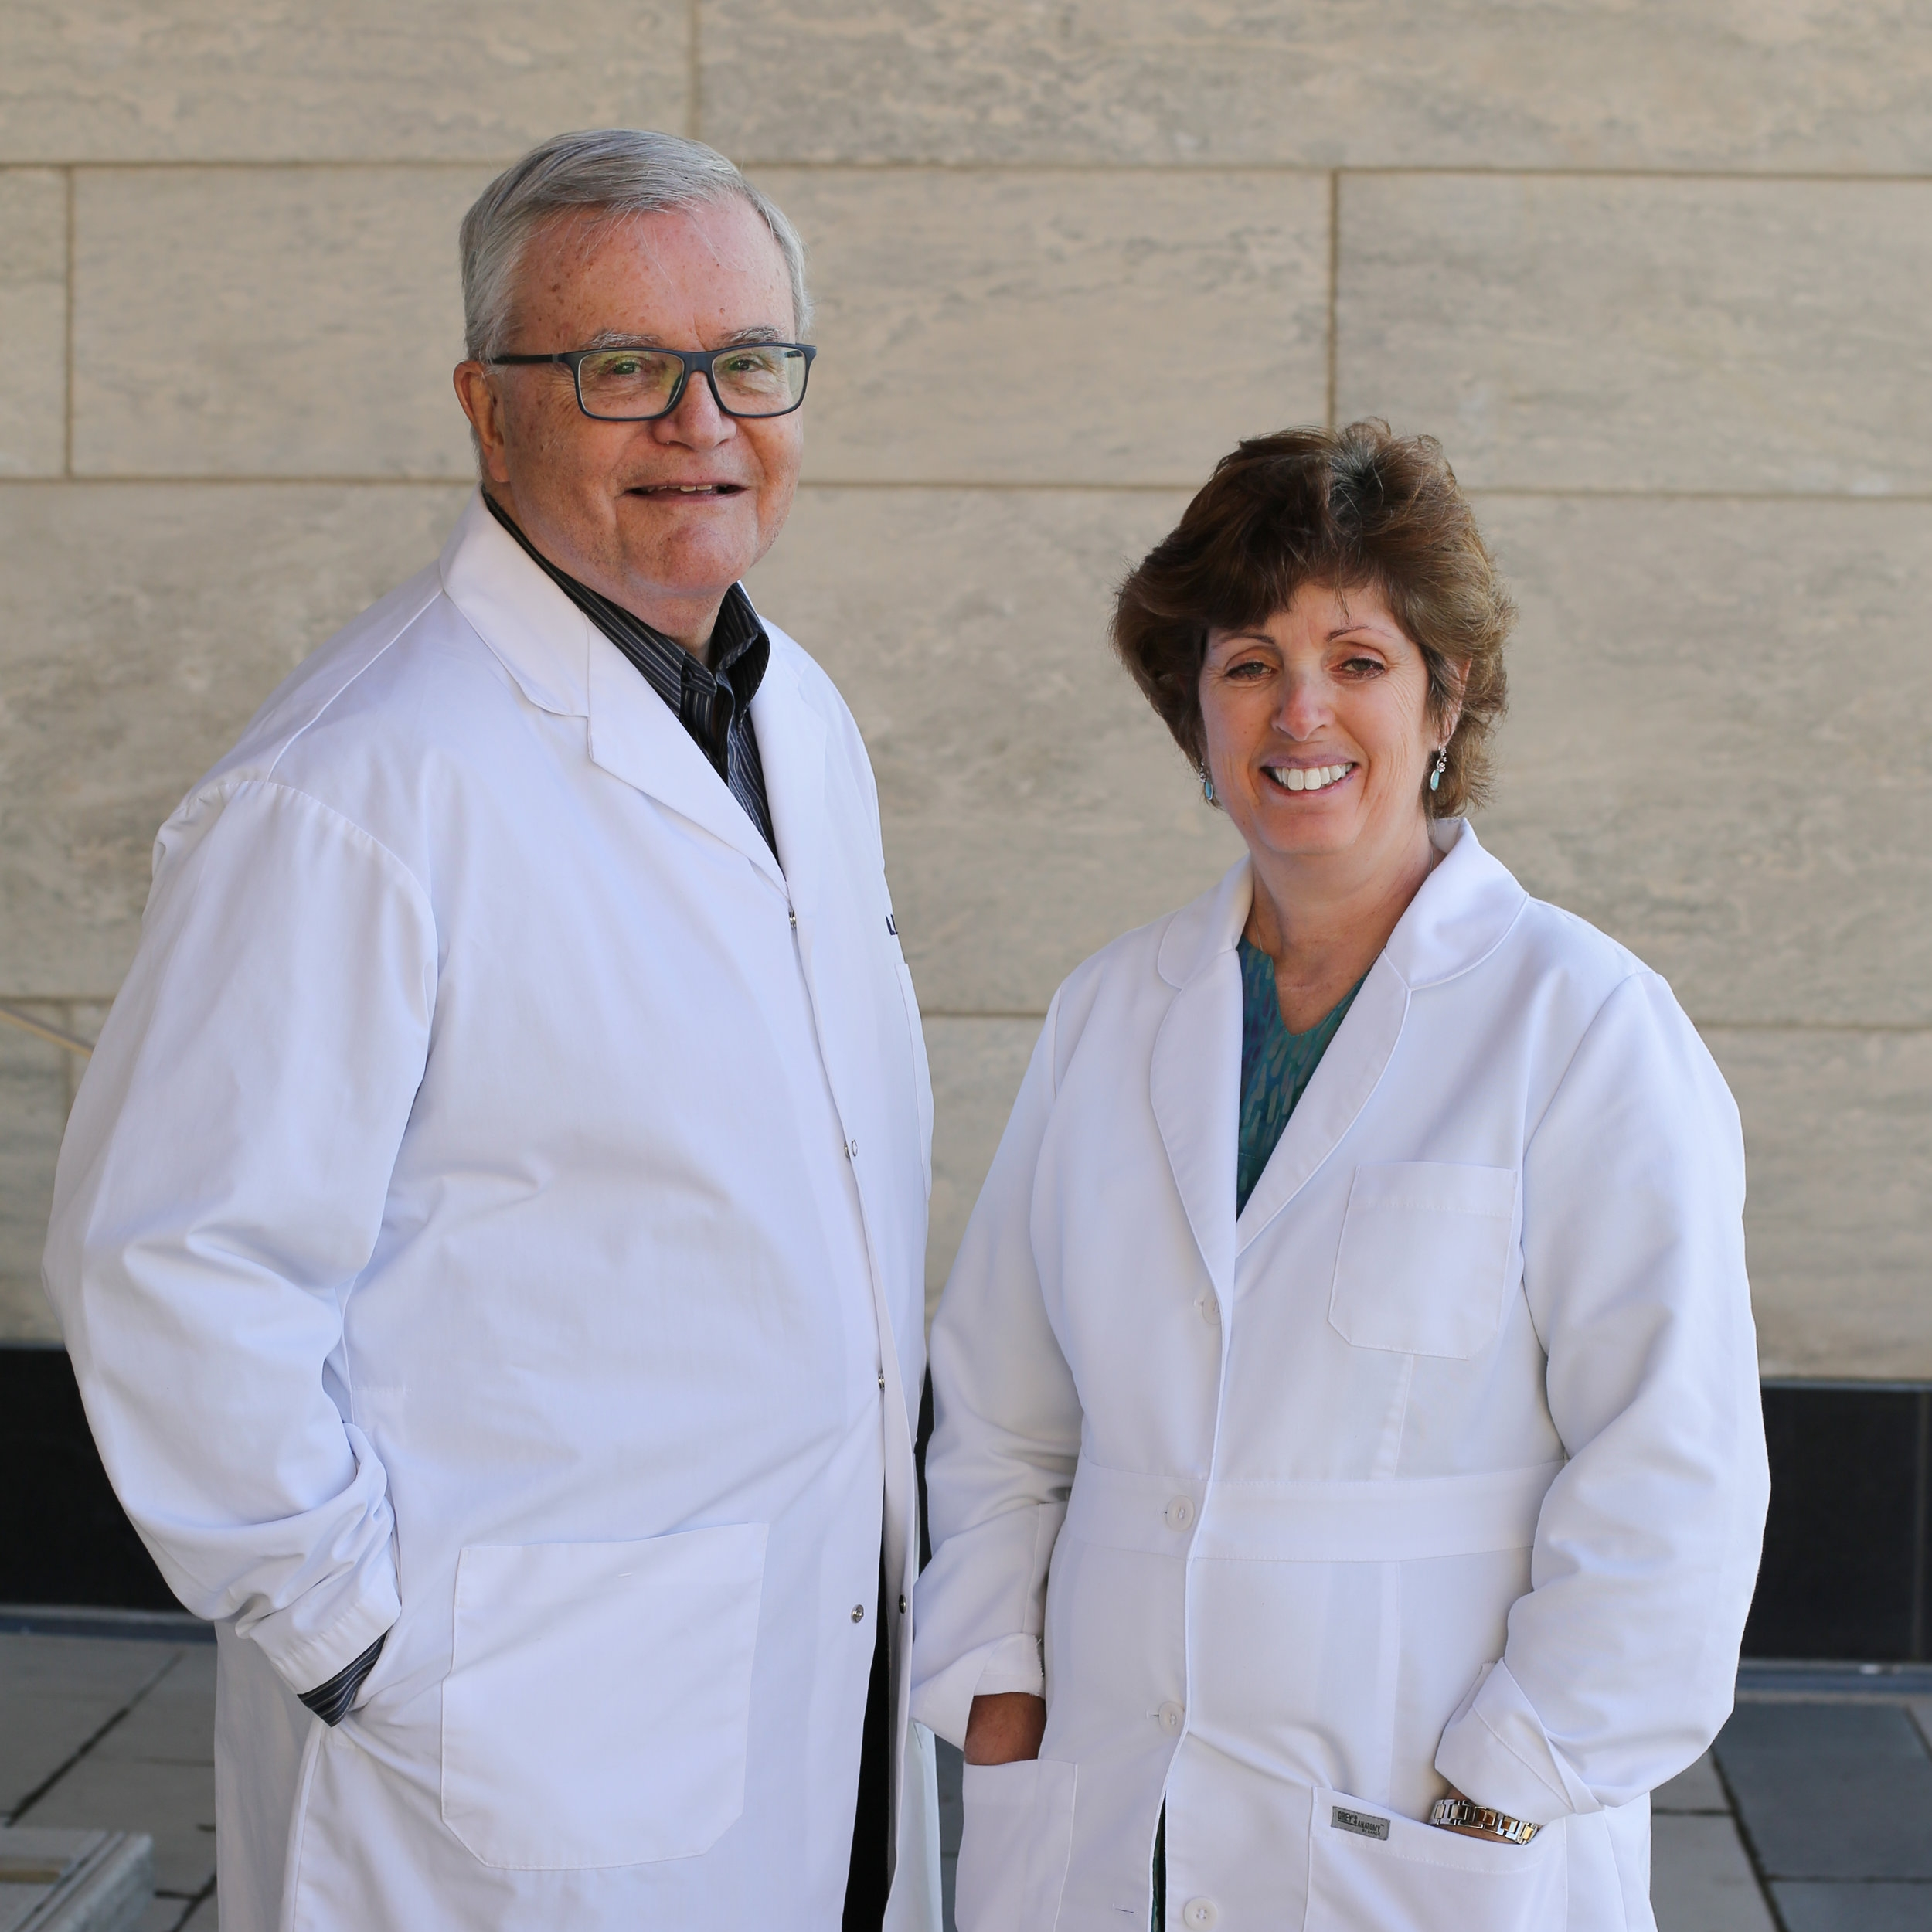 About US - Find out about our physicians, laboratory staff, nurses, and other team members.